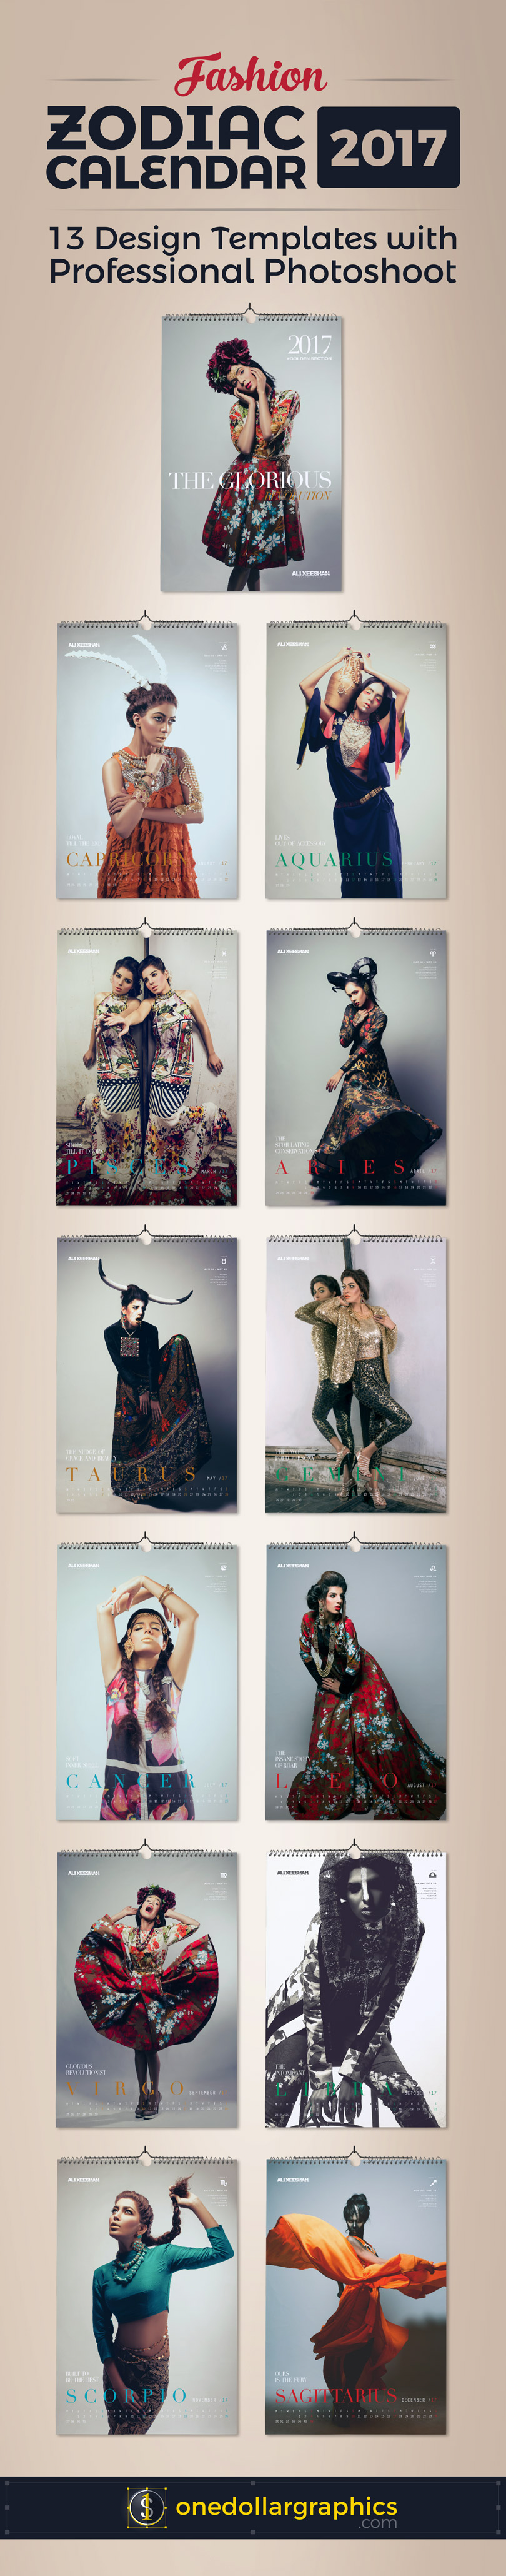 Calendar Design Zodiac : Zodiac signs fashion wall calendar design template